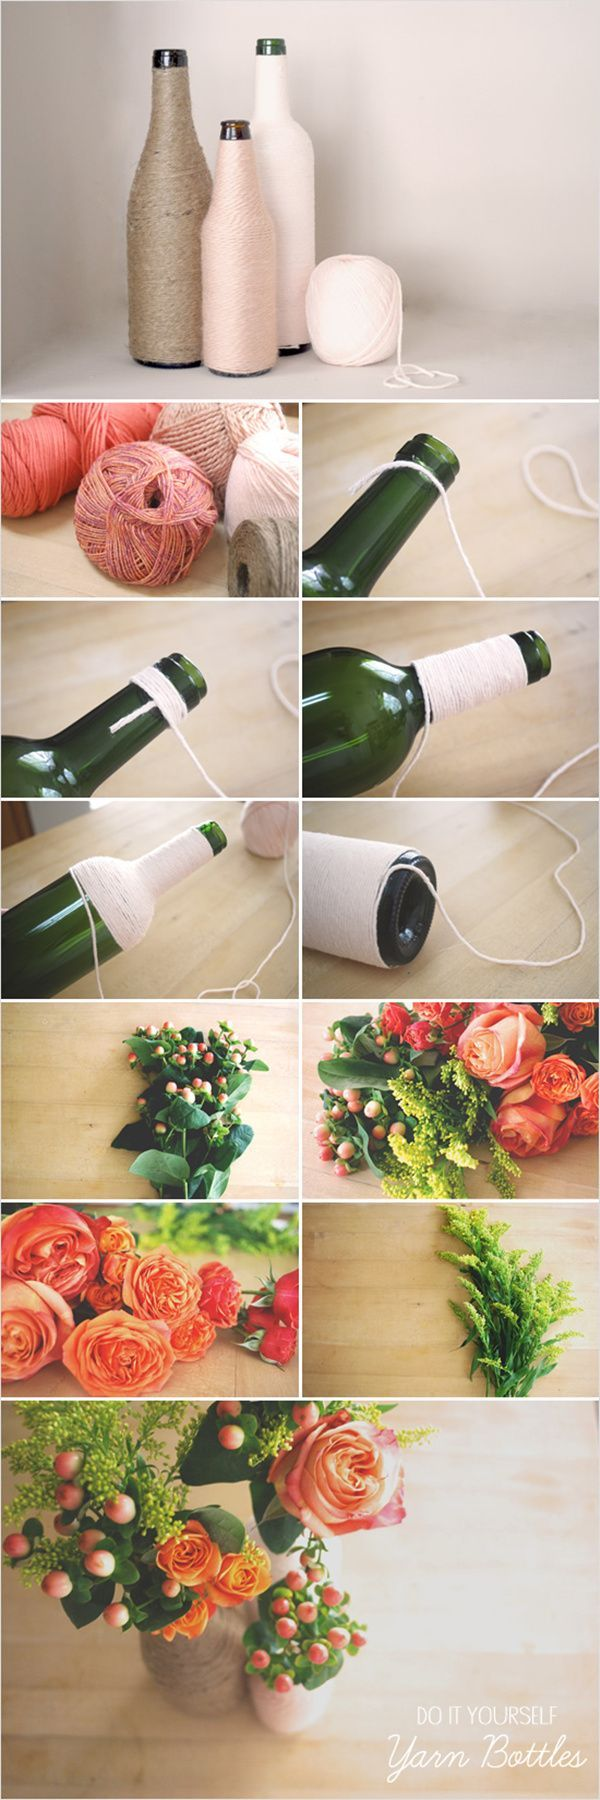 unqiue rope wrapped bottle spring wedding centerpiece ideas